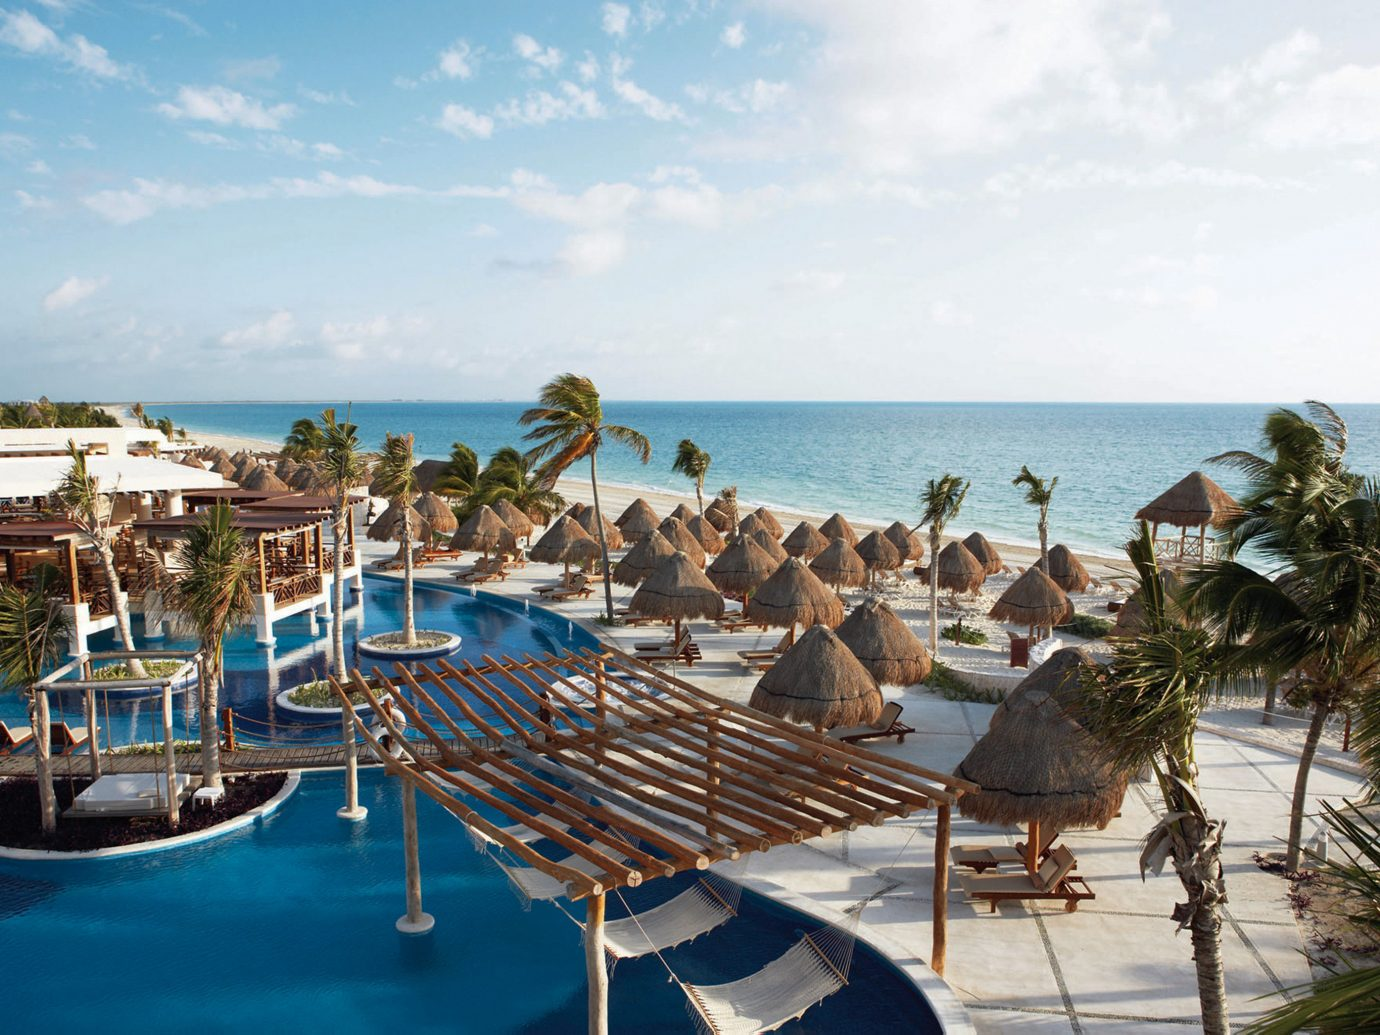 Pool In Playa Mujeres Cancun, Mexico - All Inclusive Resort For Adults